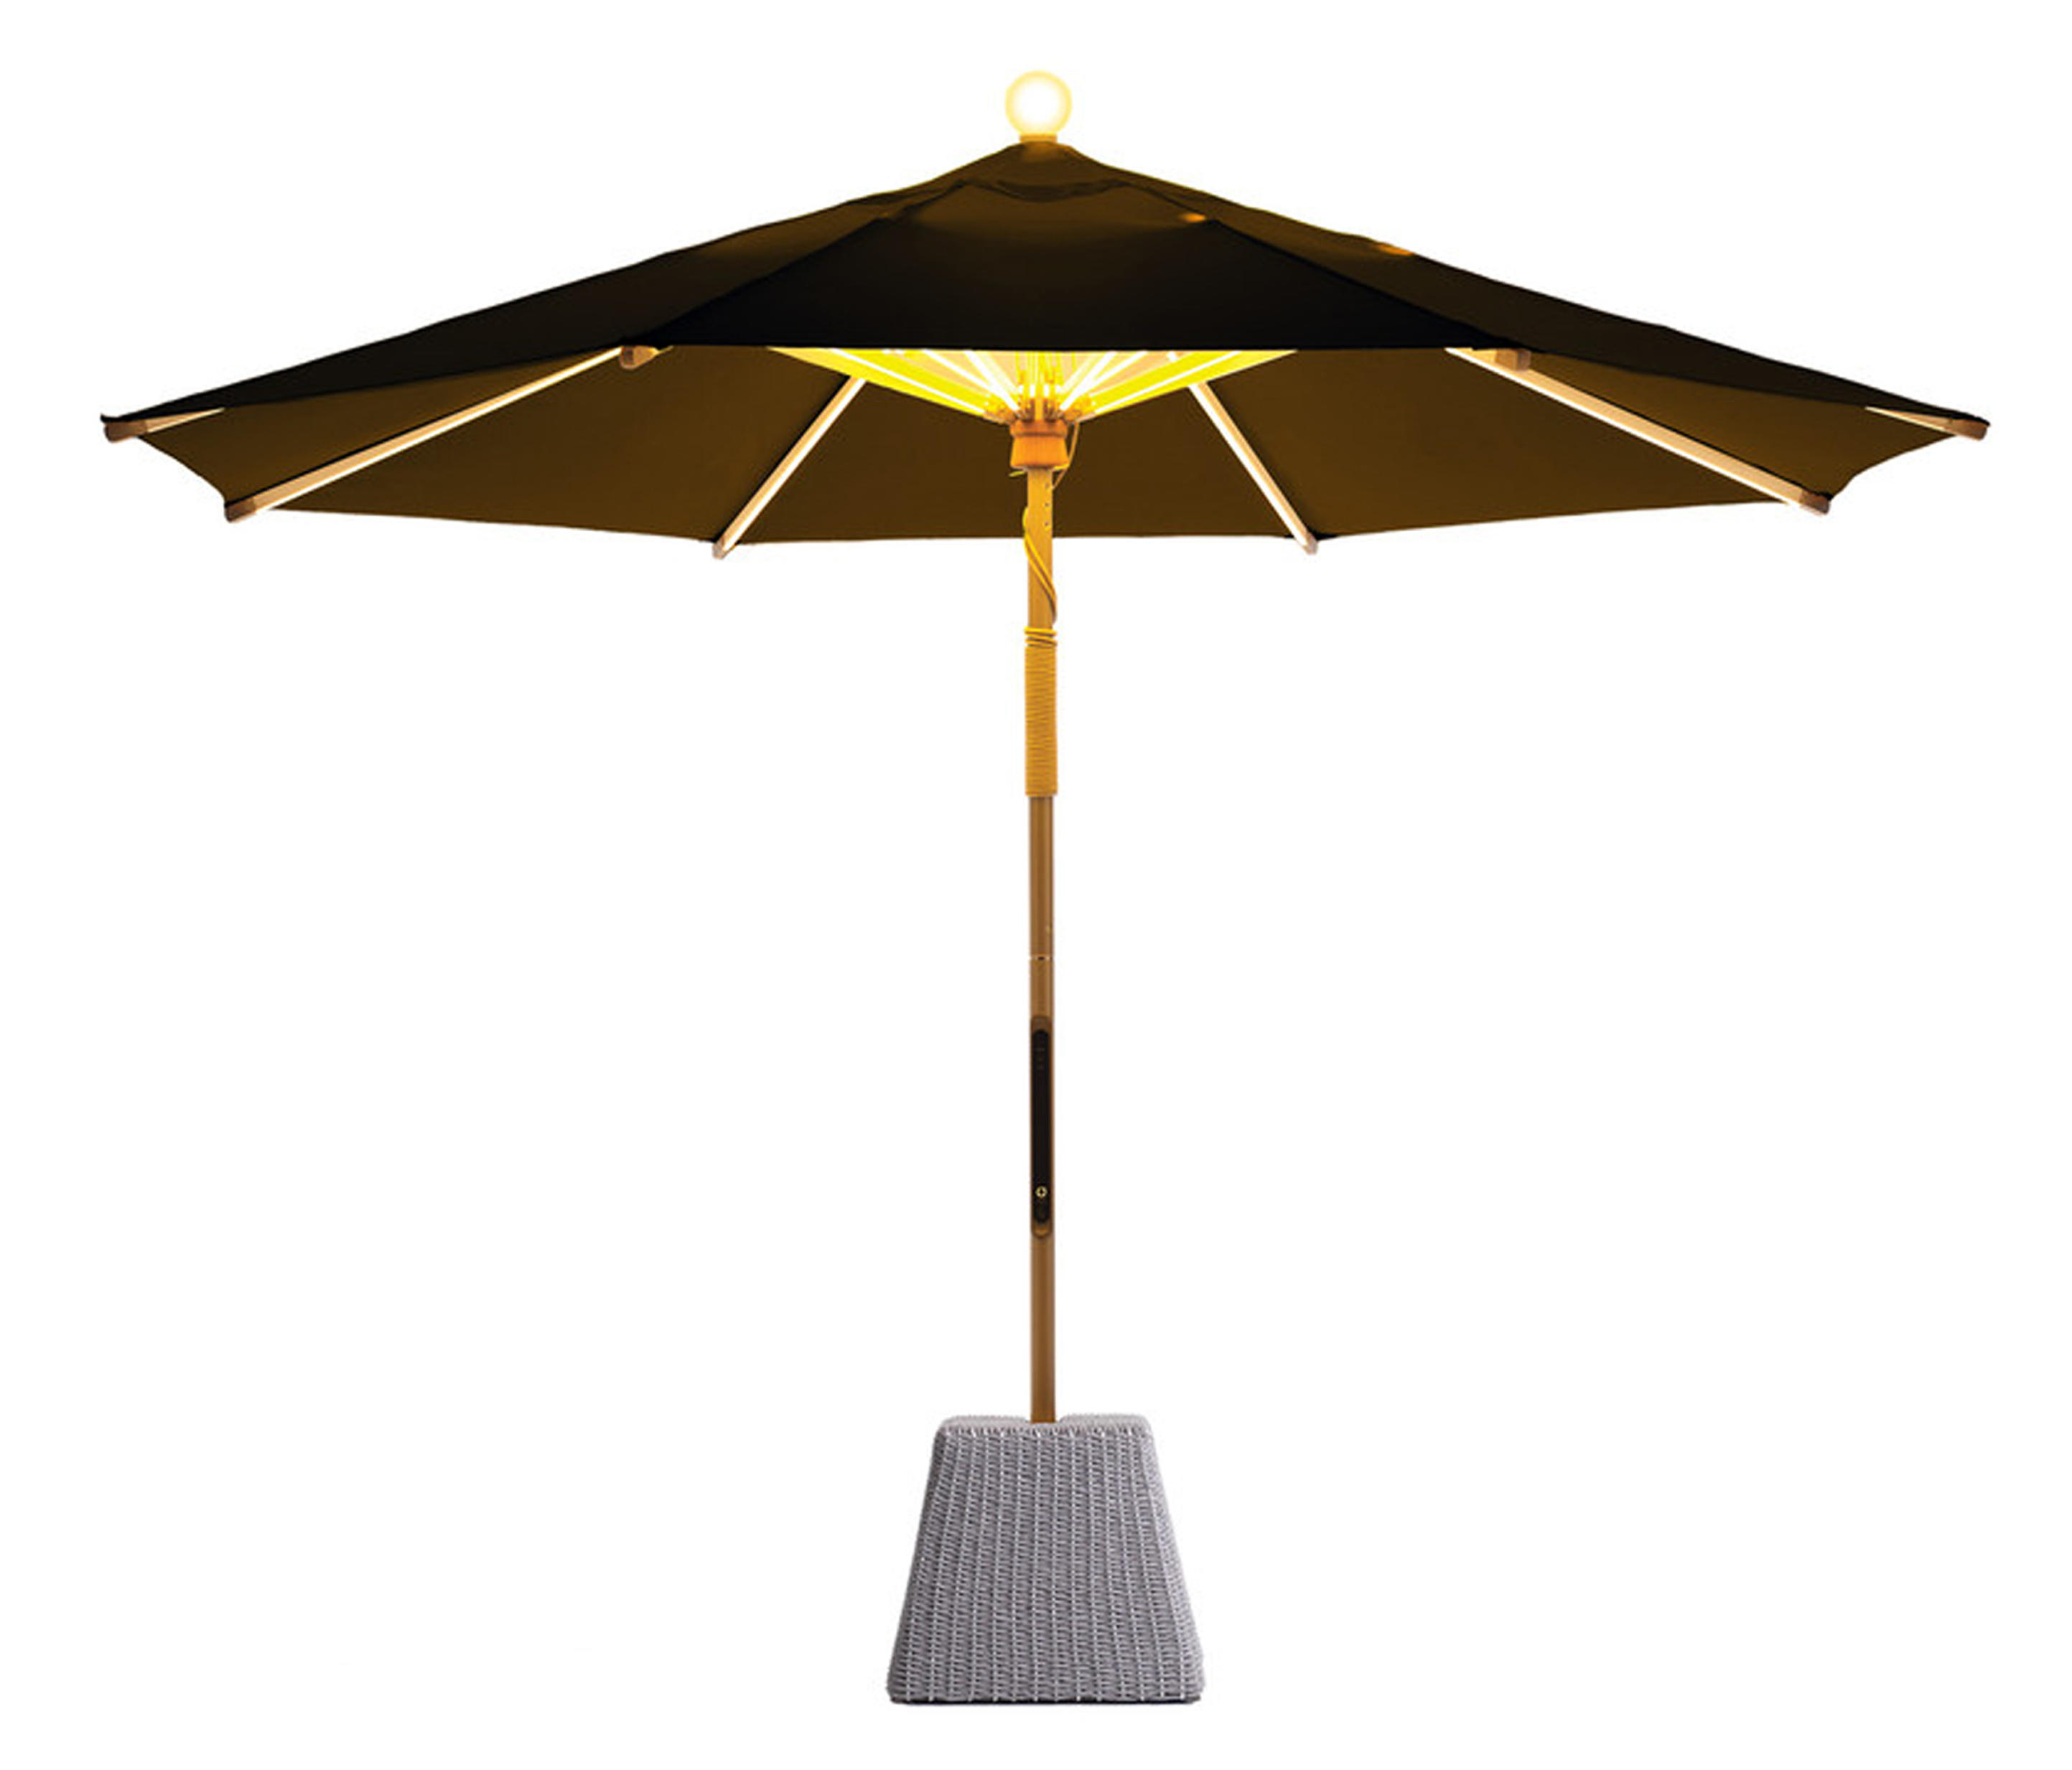 ni parasol 350 sunbrella parasols de foxcat design. Black Bedroom Furniture Sets. Home Design Ideas